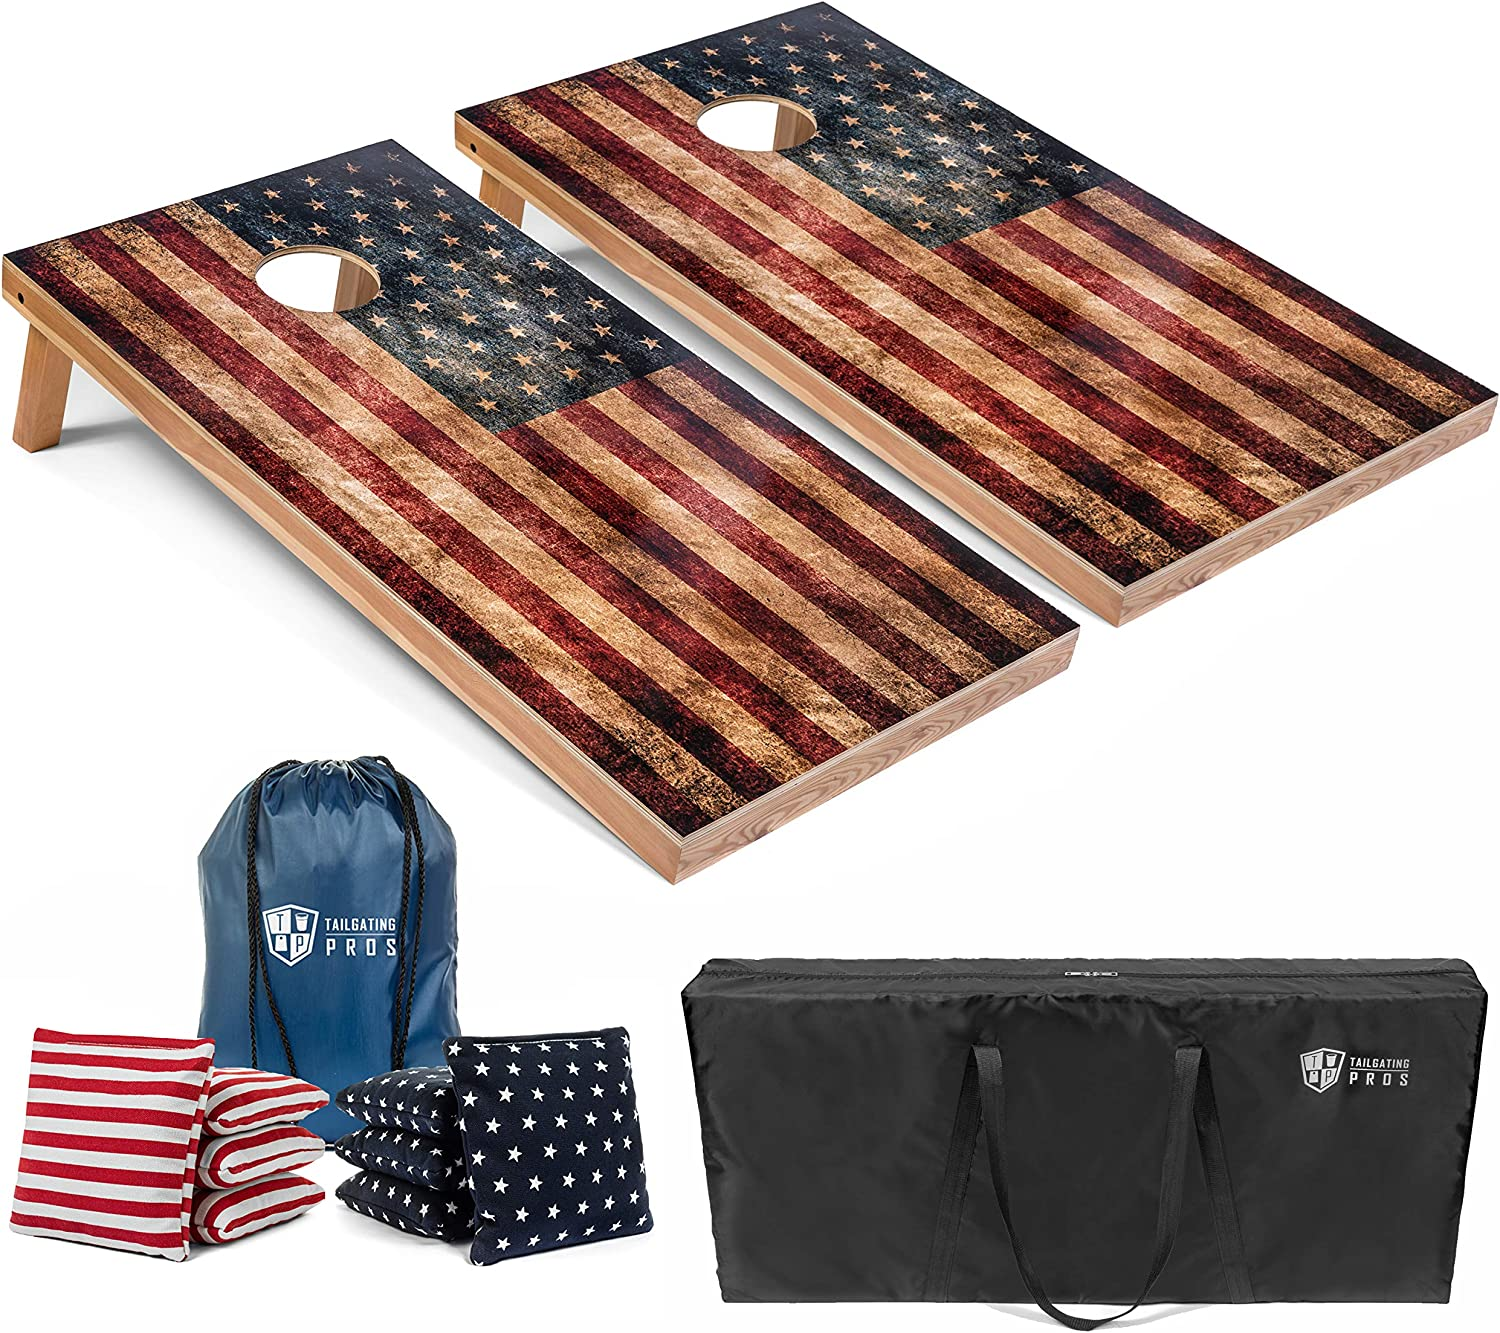 Tailgating Pros Cornhole Boards - 4'x2' 3'x2' w Manufacturer OFFicial shop Deluxe Game